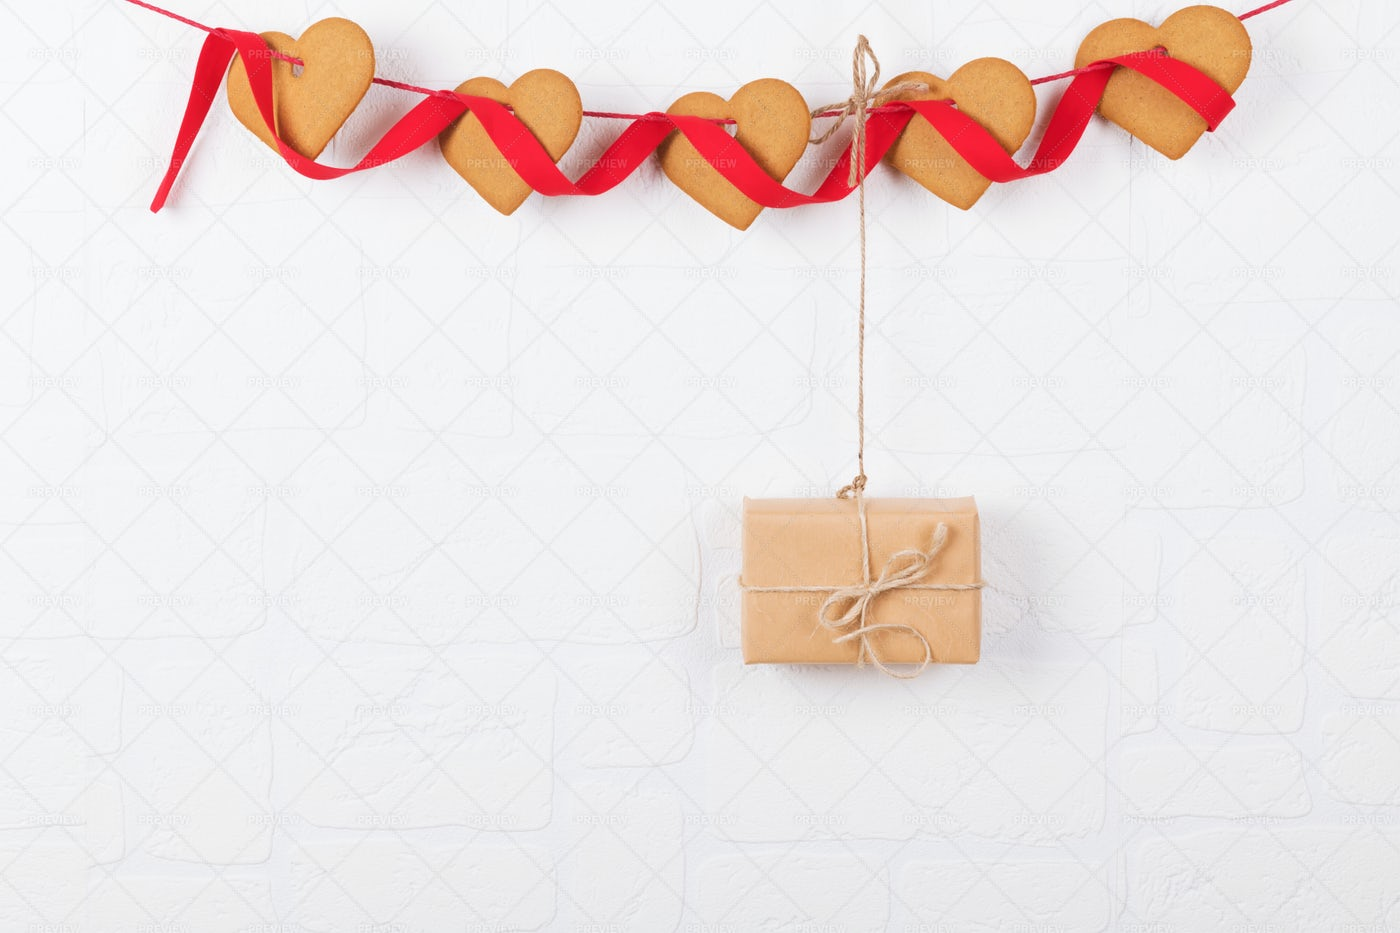 Gift Hanging From Bunting: Stock Photos